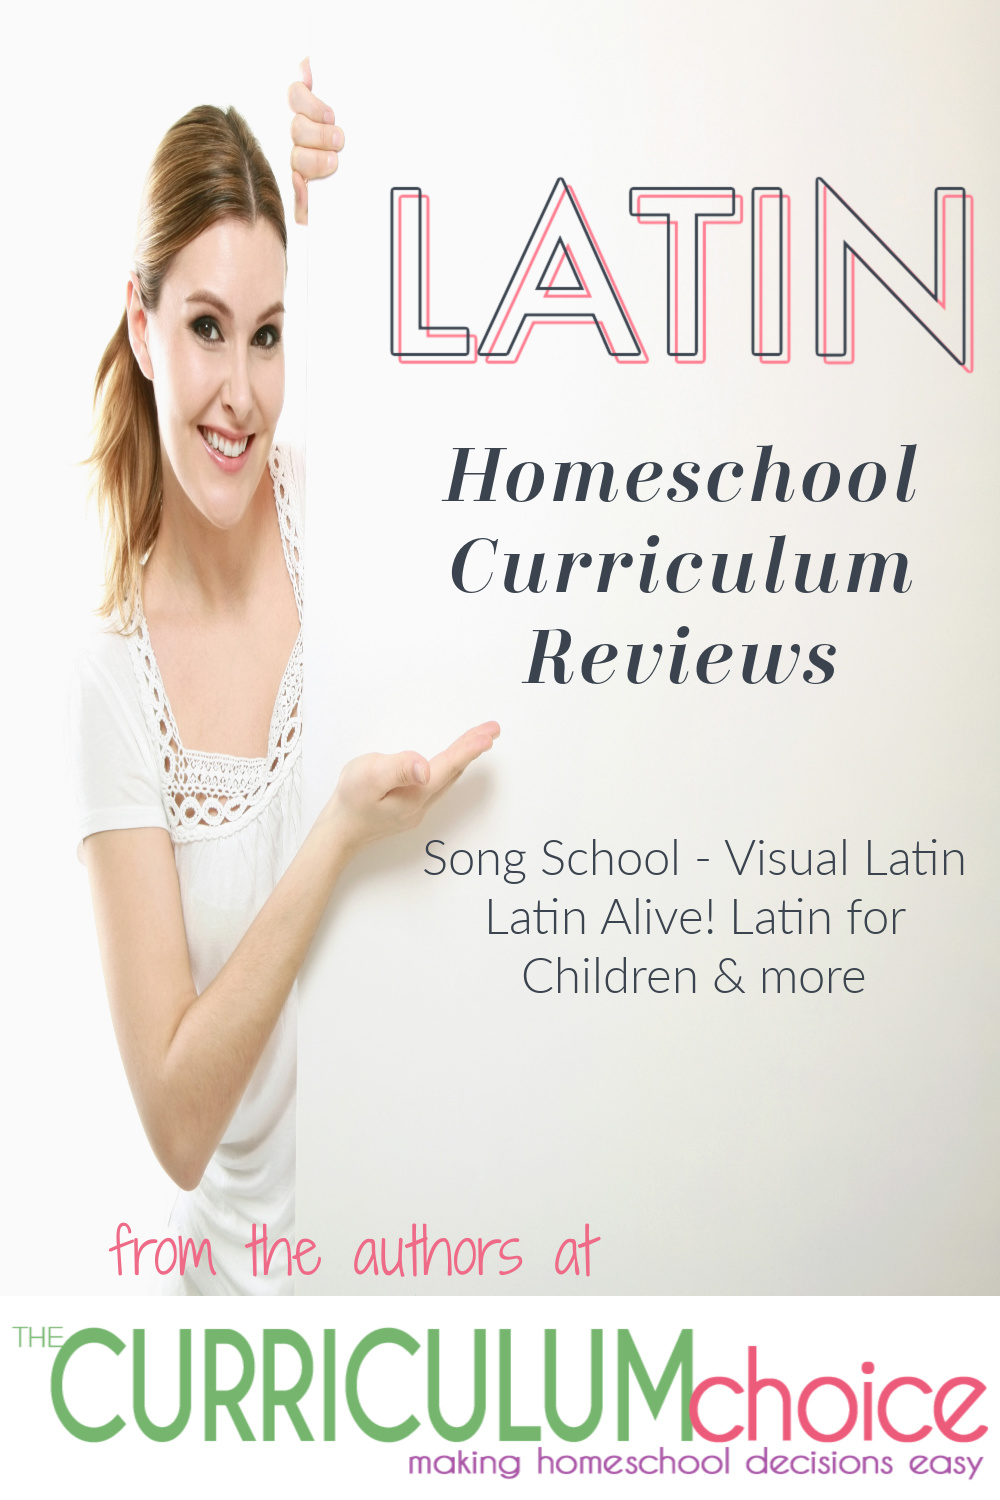 A massive list of Latin Homeschool Curriculum Reviews from our review authors. Latin for Children, Song School Latin, Visual Latin and more!